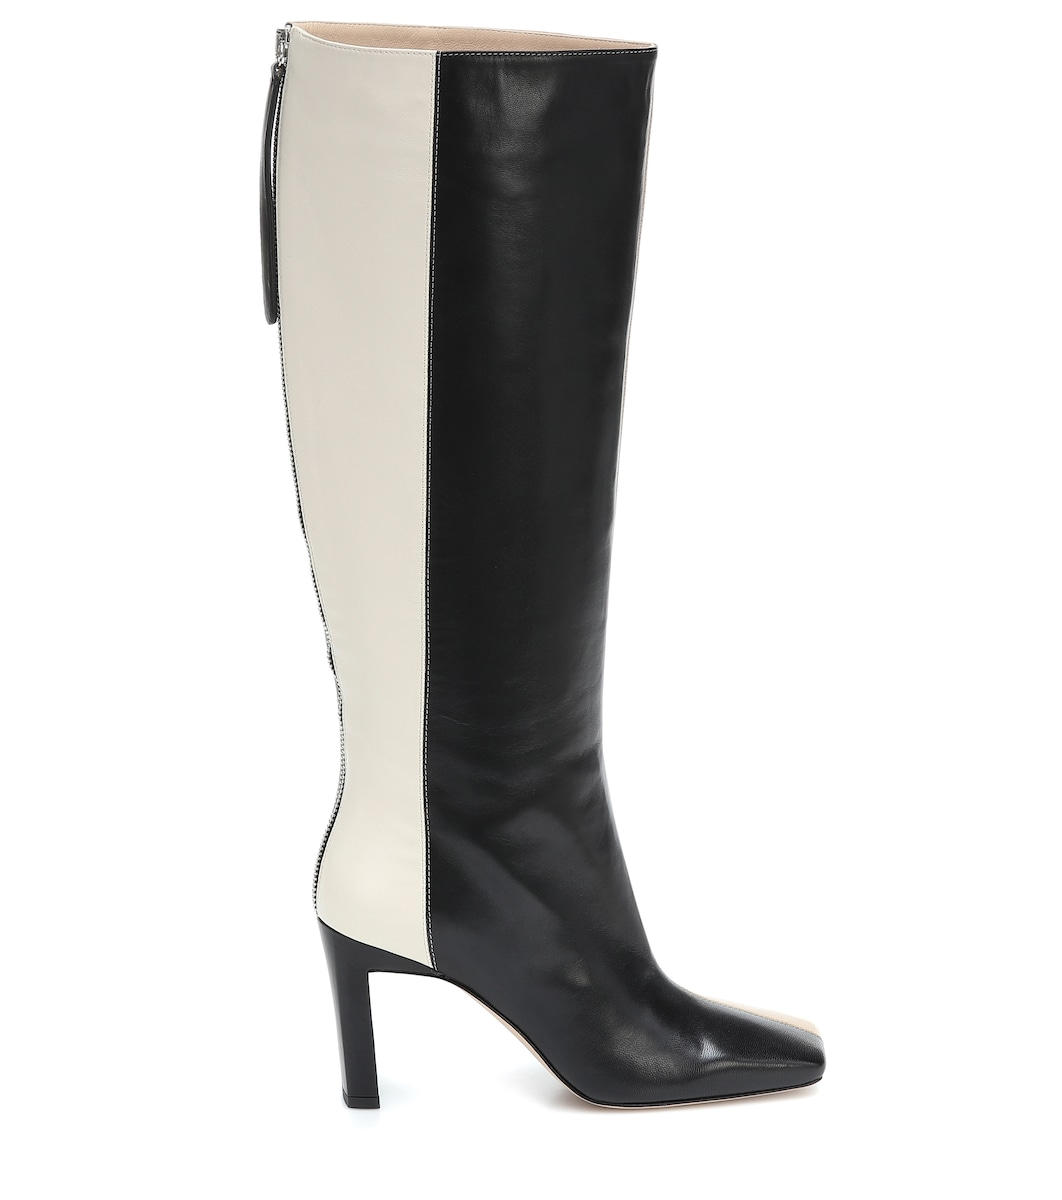 Isa leather knee high boots